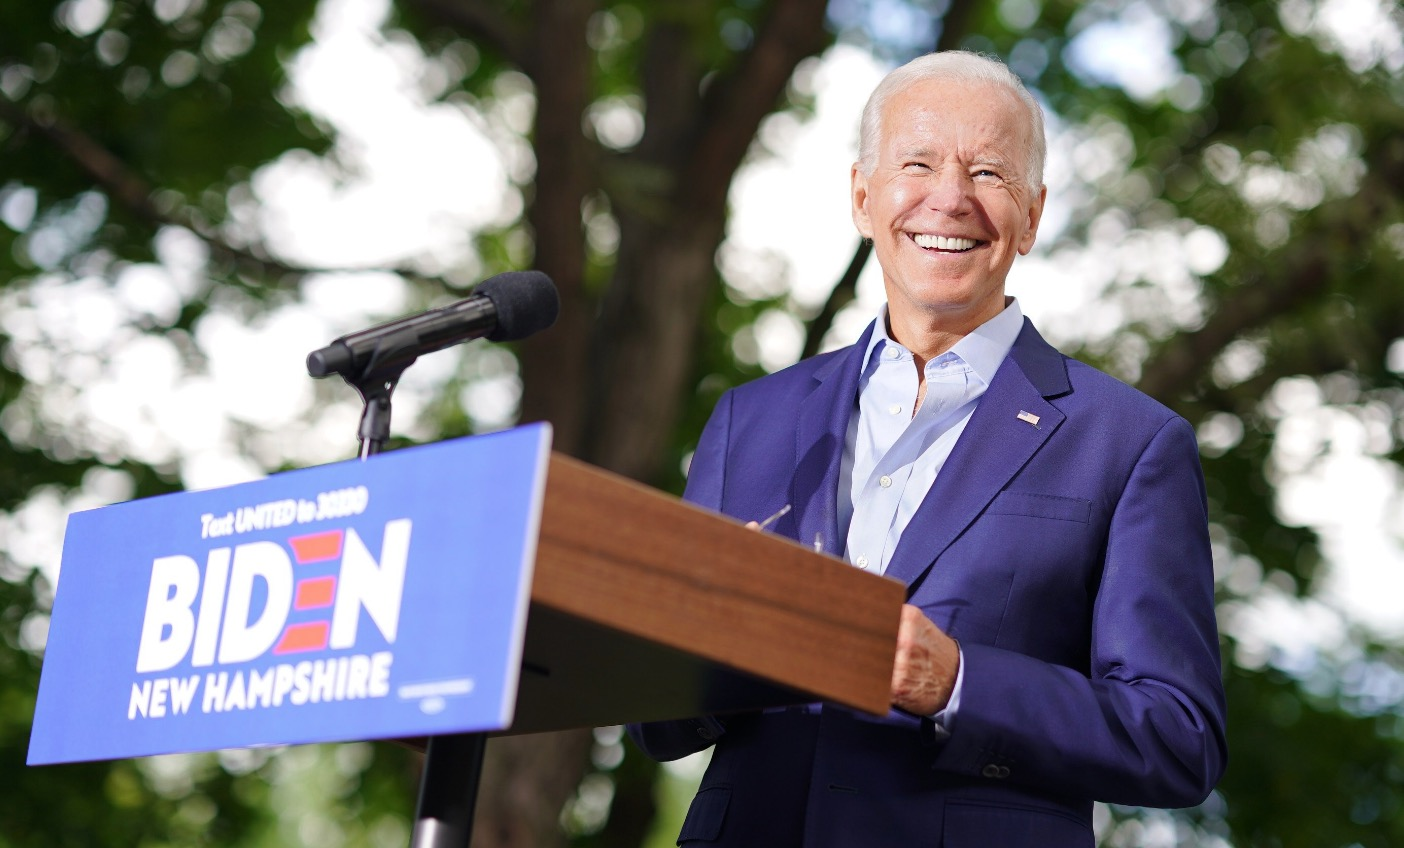 Biden's slip in polls is undeniable